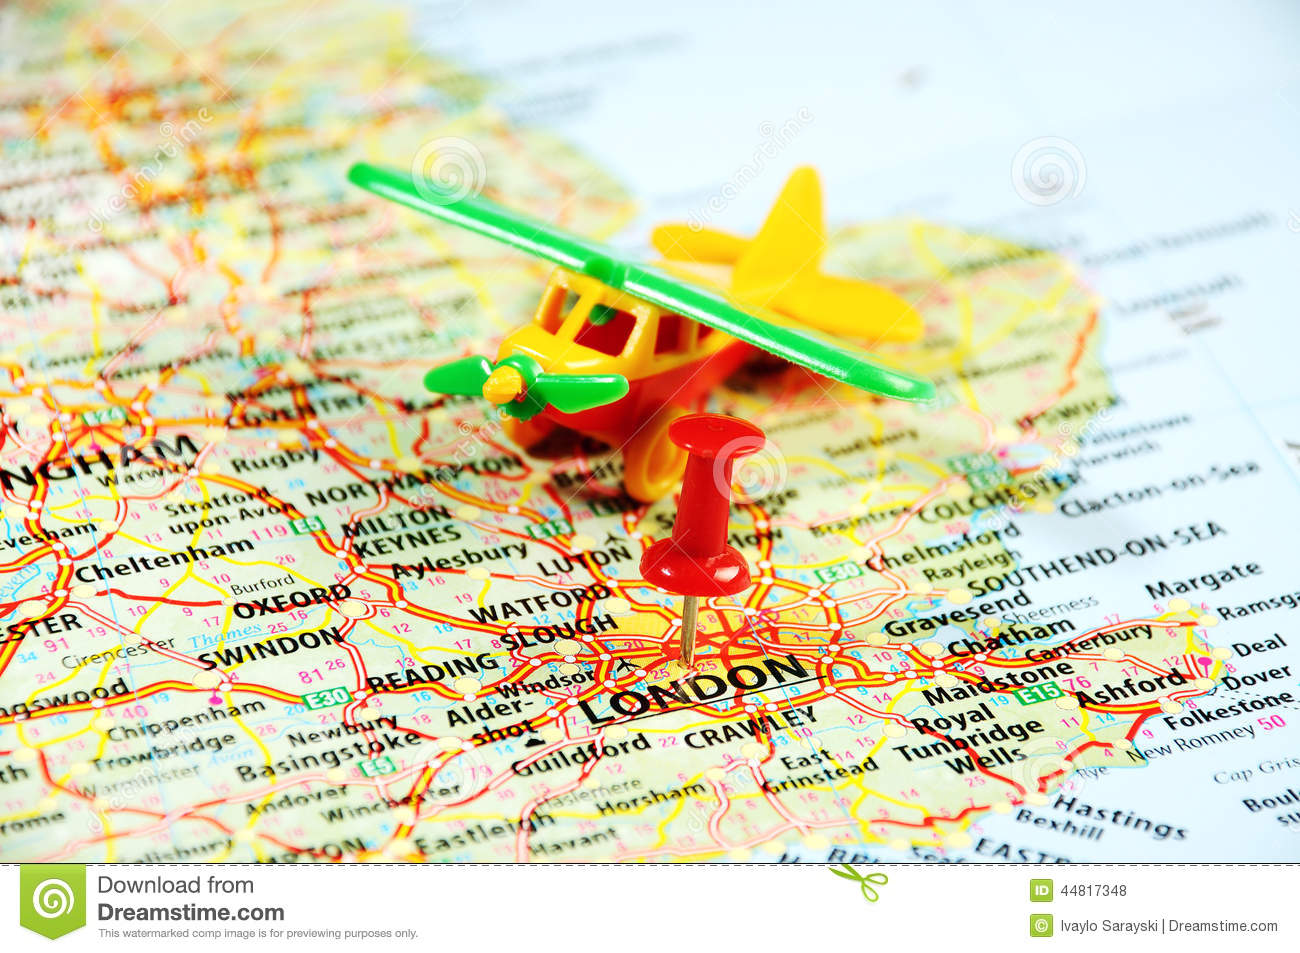 london uk map pin airplane